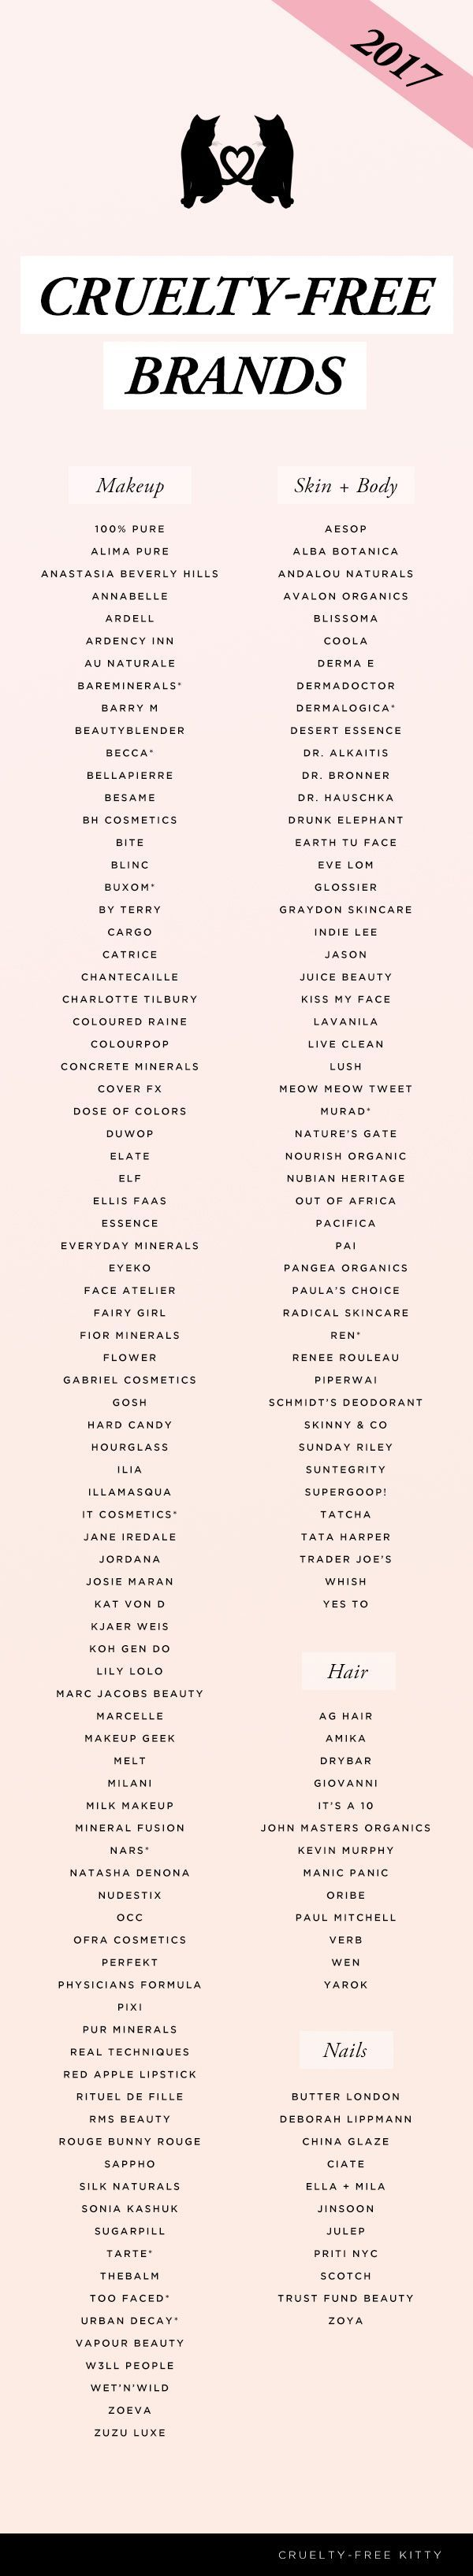 Updated cruelty-free brand list of 2017